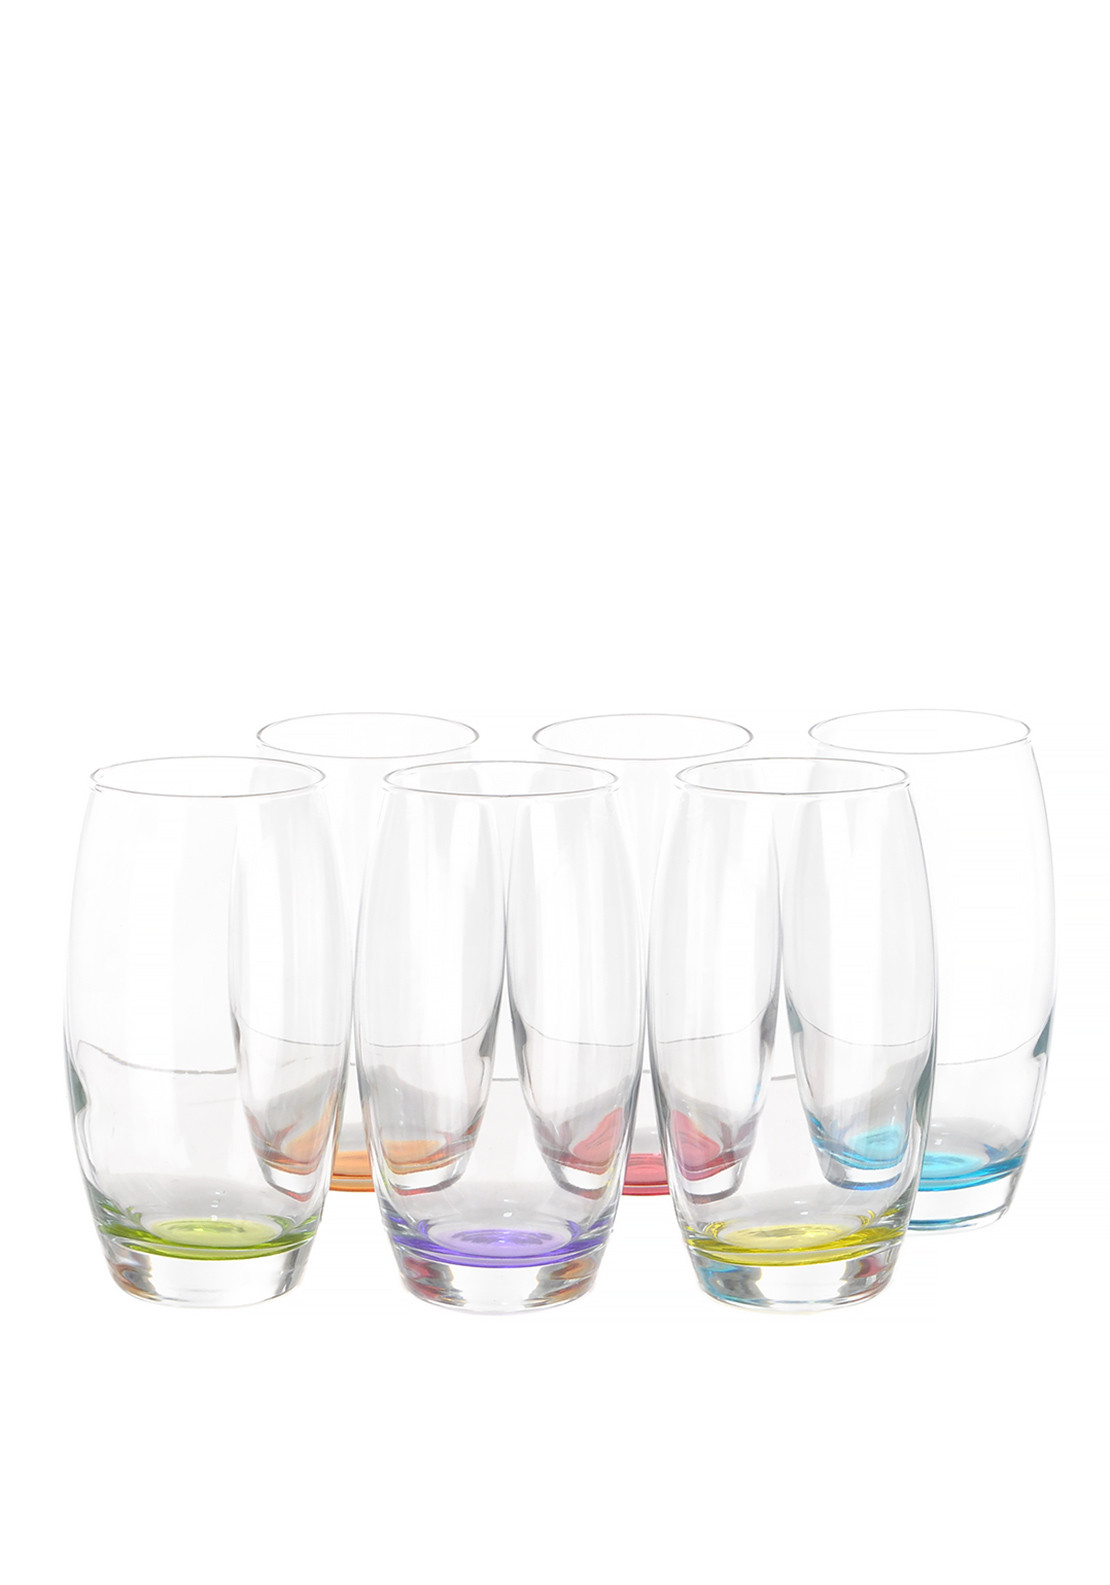 Symphony Prism Aria Long Drink 510ml, set of 6